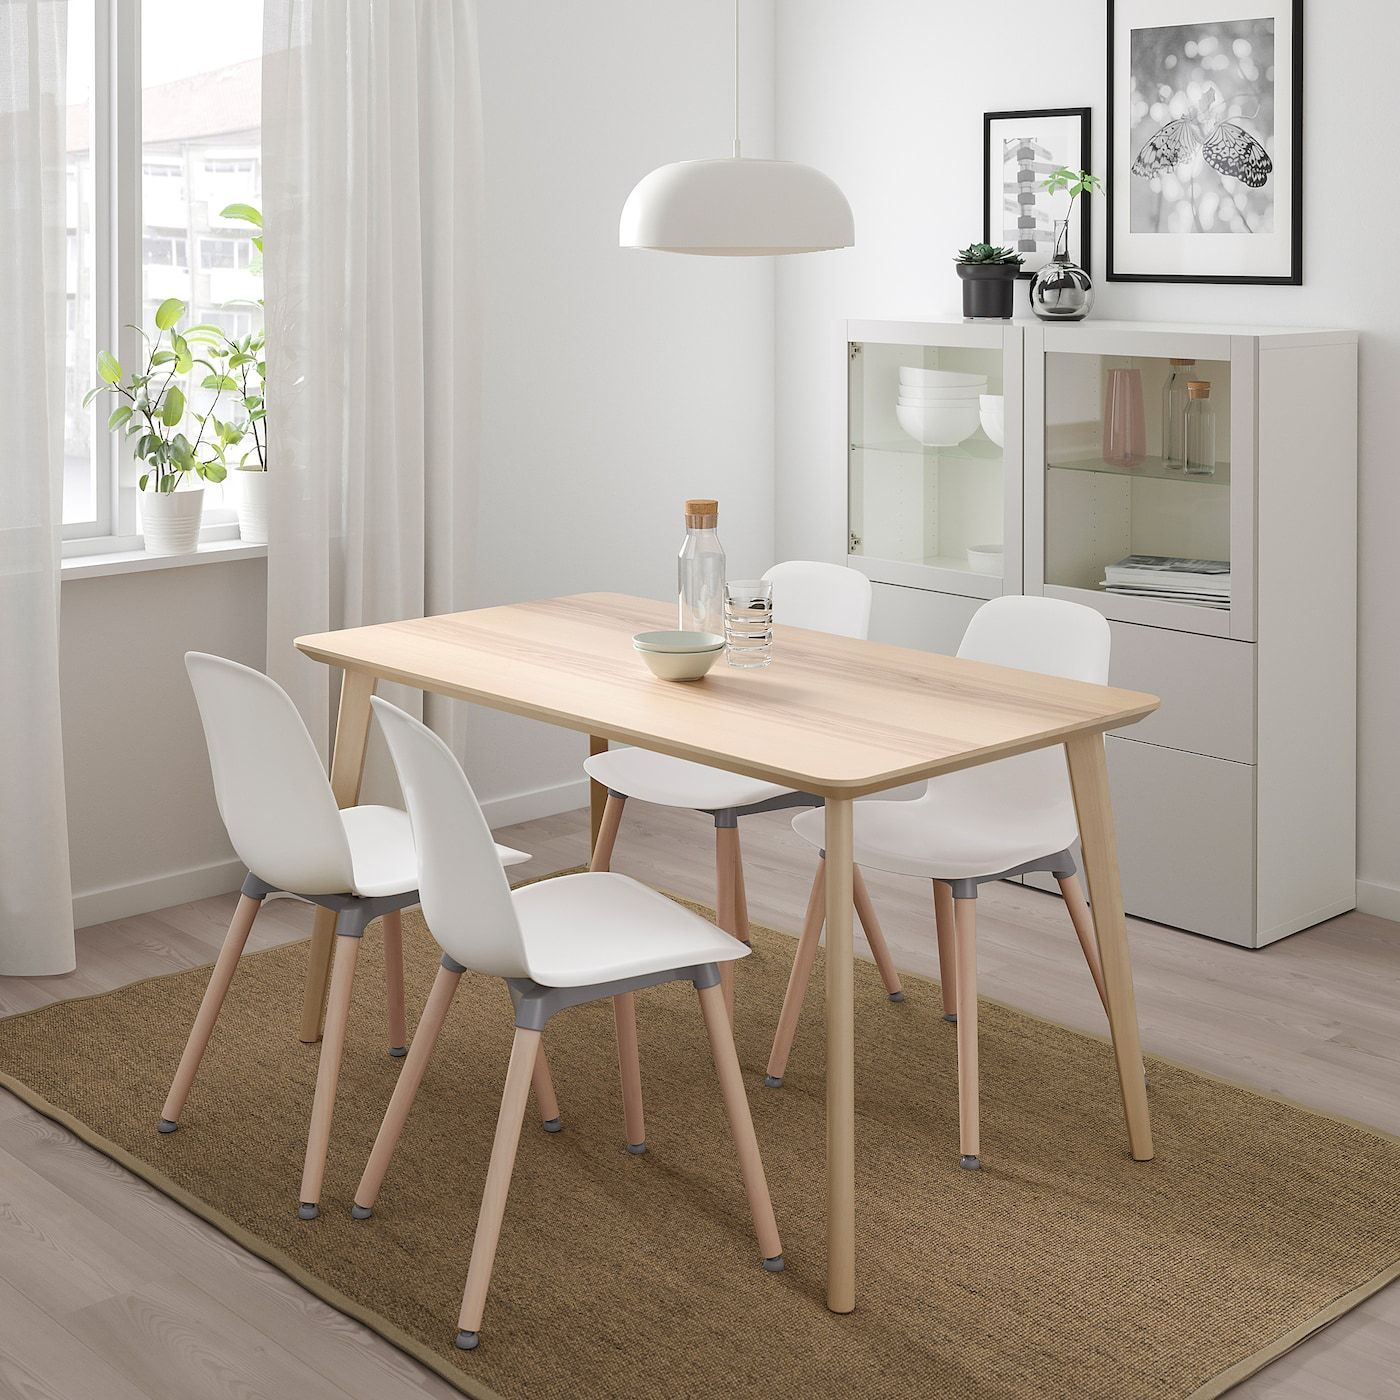 15++ White 4 chair dining set Various Types